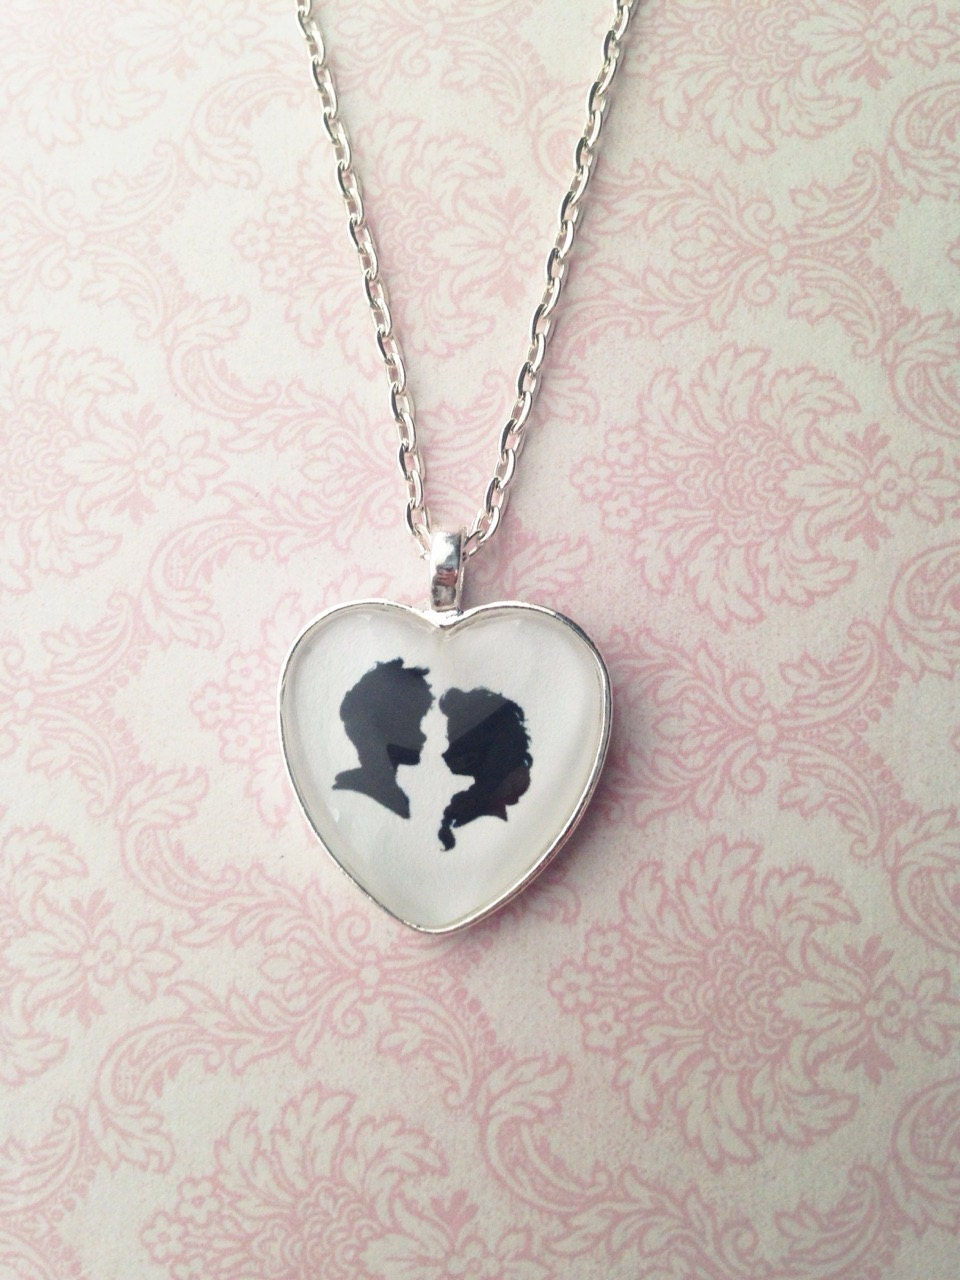 Night light x jack frost - Handmade Elsa And Jack Frost Cameo Silhouette Heart Pendant Necklace Disney Couple Necklace Frozen Necklace